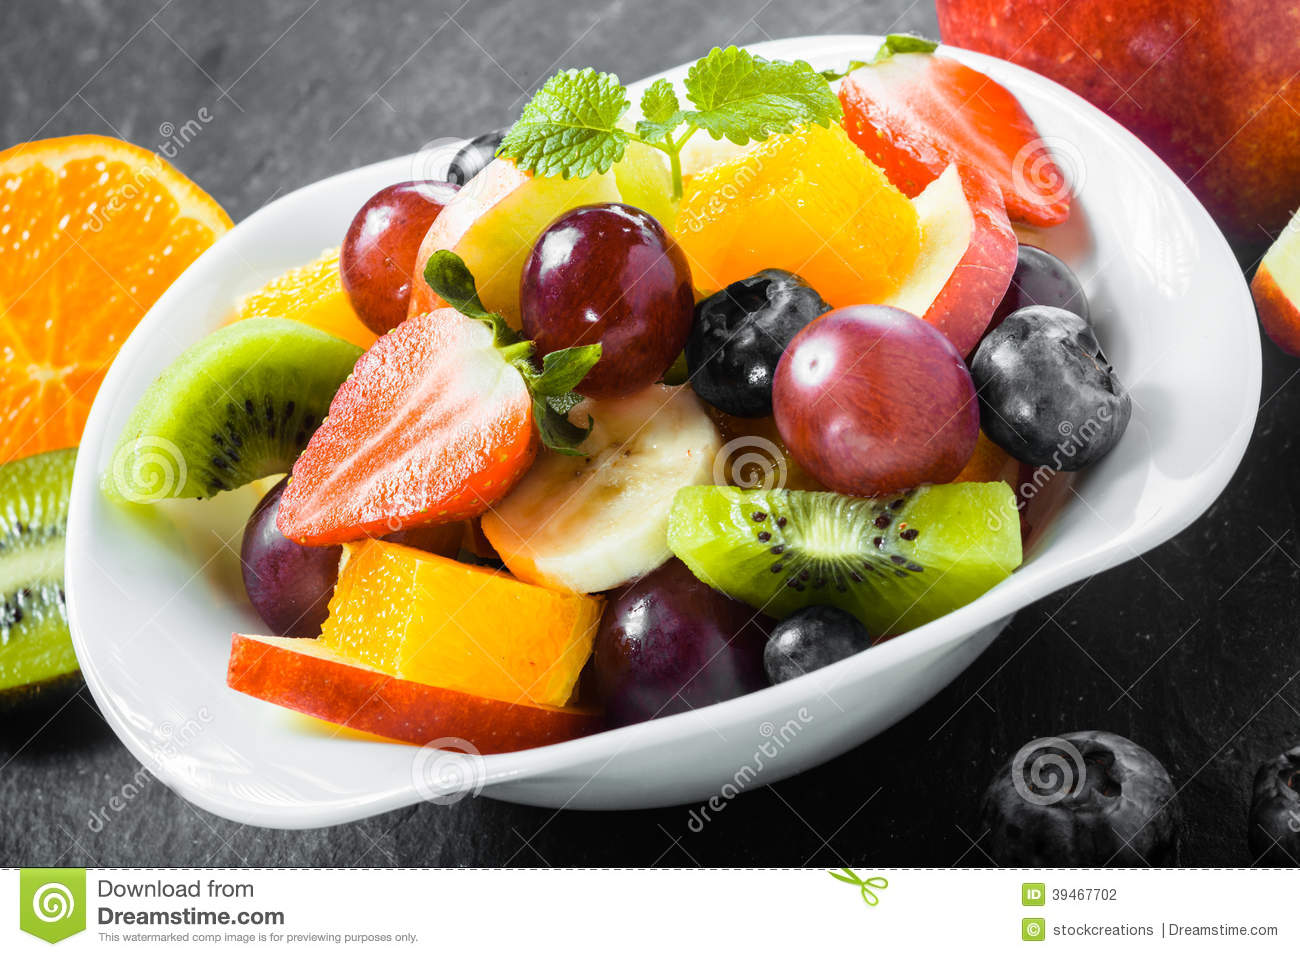 Colorful Fruit Bowl Colorful Bowl Of Healthy Tropical Fruit Salad Stock Photo